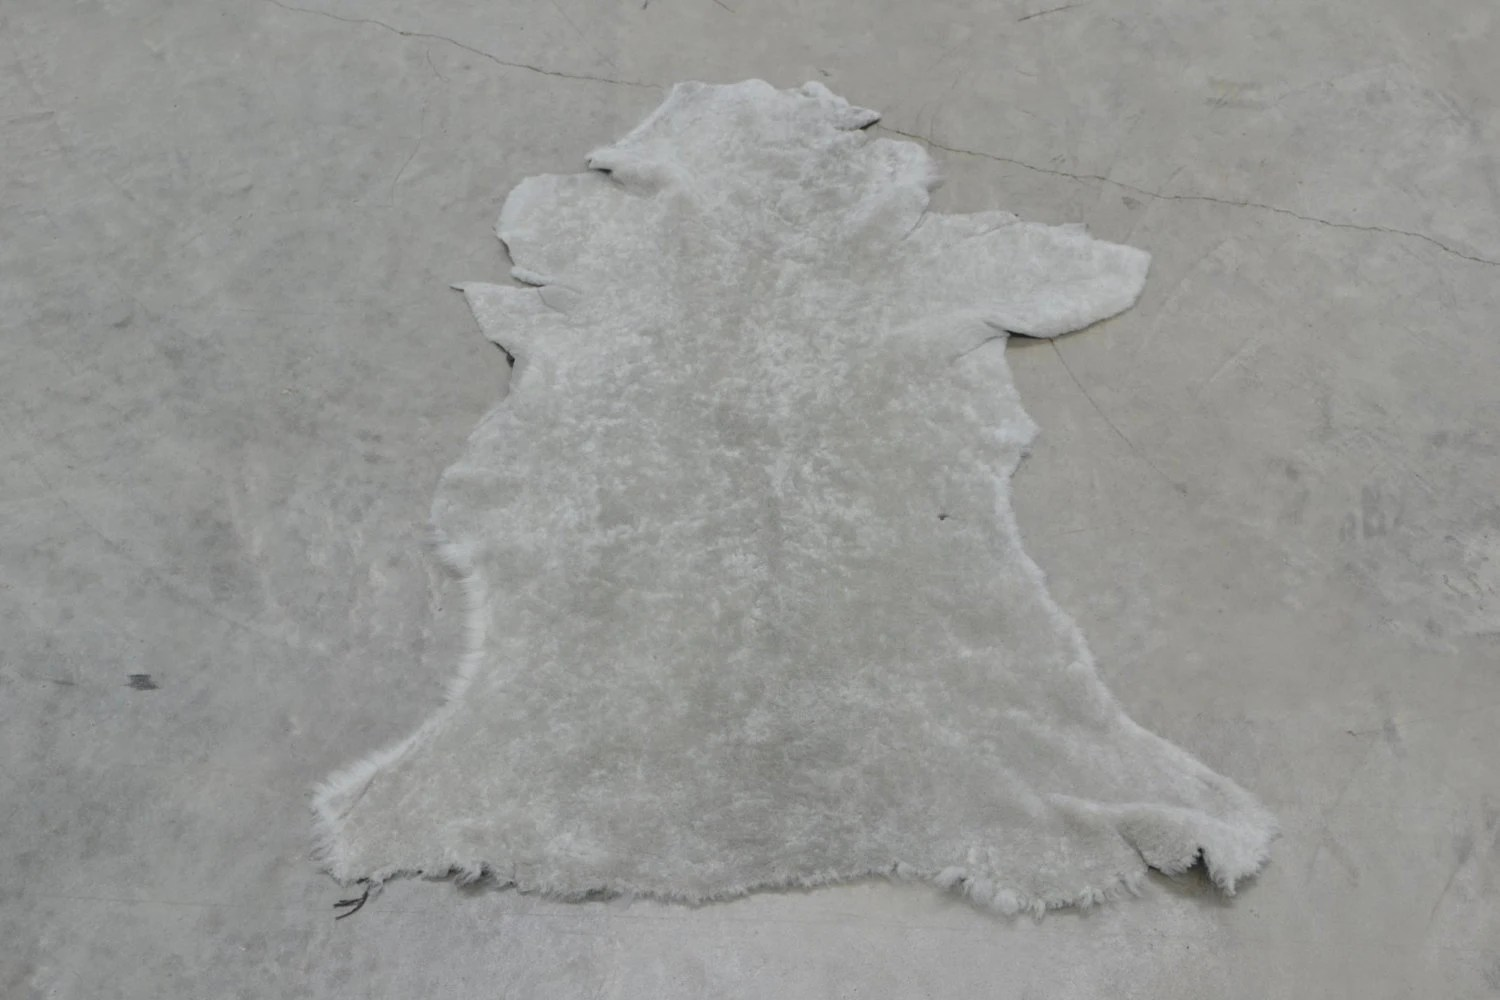 Leather Shearling Lamb Hide 4 3 Square Foot Wool Cover